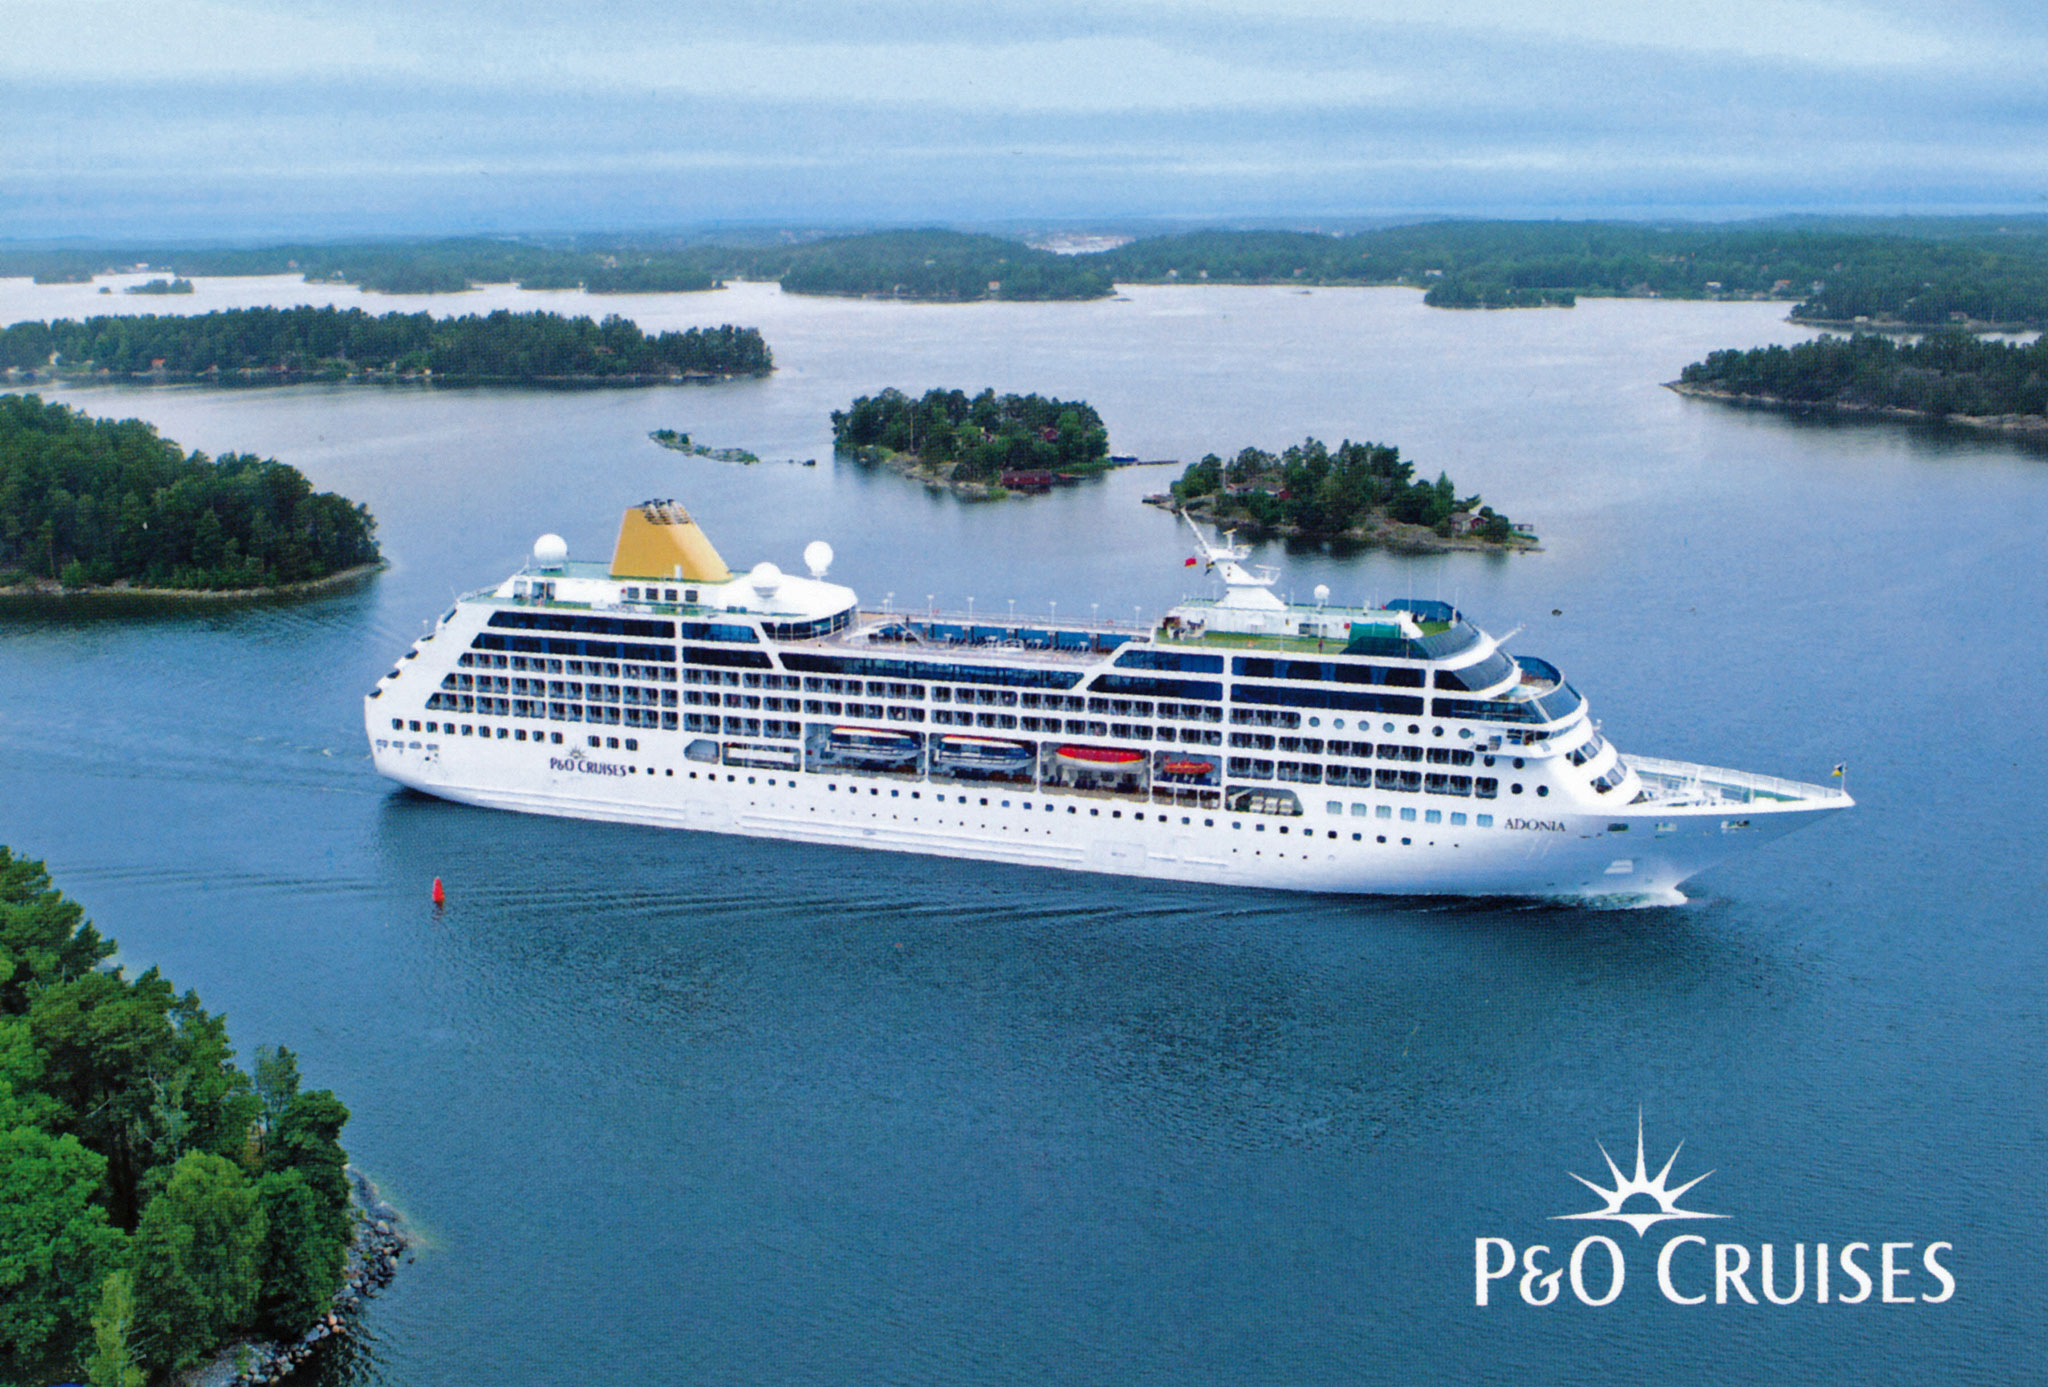 Adonia returns to p o cruises fleet in 2017 cruisemiss for Round the world cruise 2016